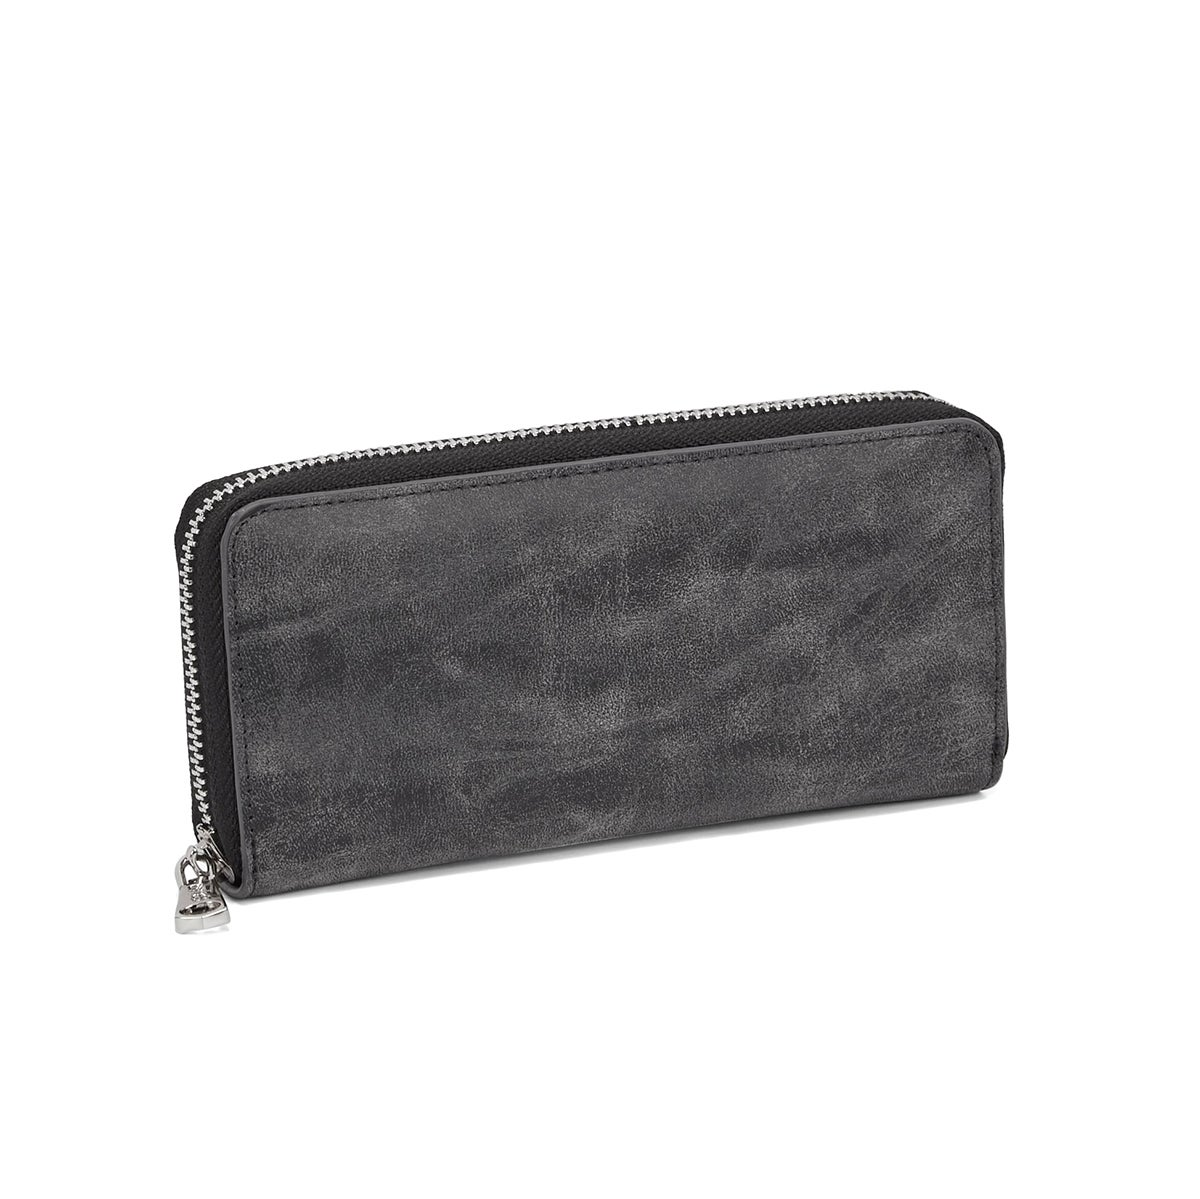 Lds dk grey zip around 4 card wallet